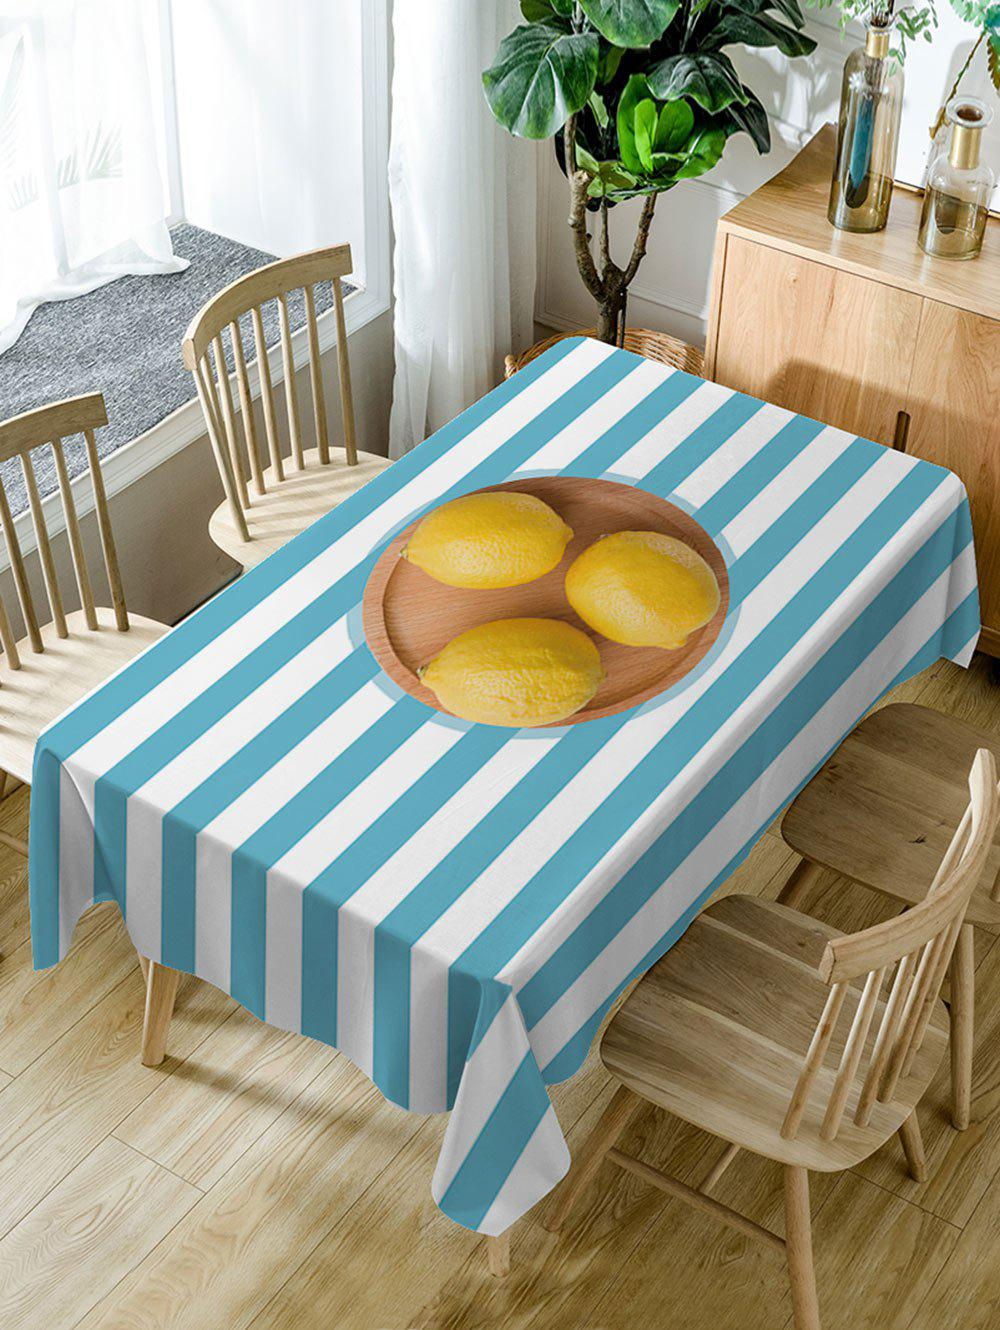 Lemon and Stripe Pattern Waterproof Table Cloth - LAKE BLUE W54 INCH * L72 INCH